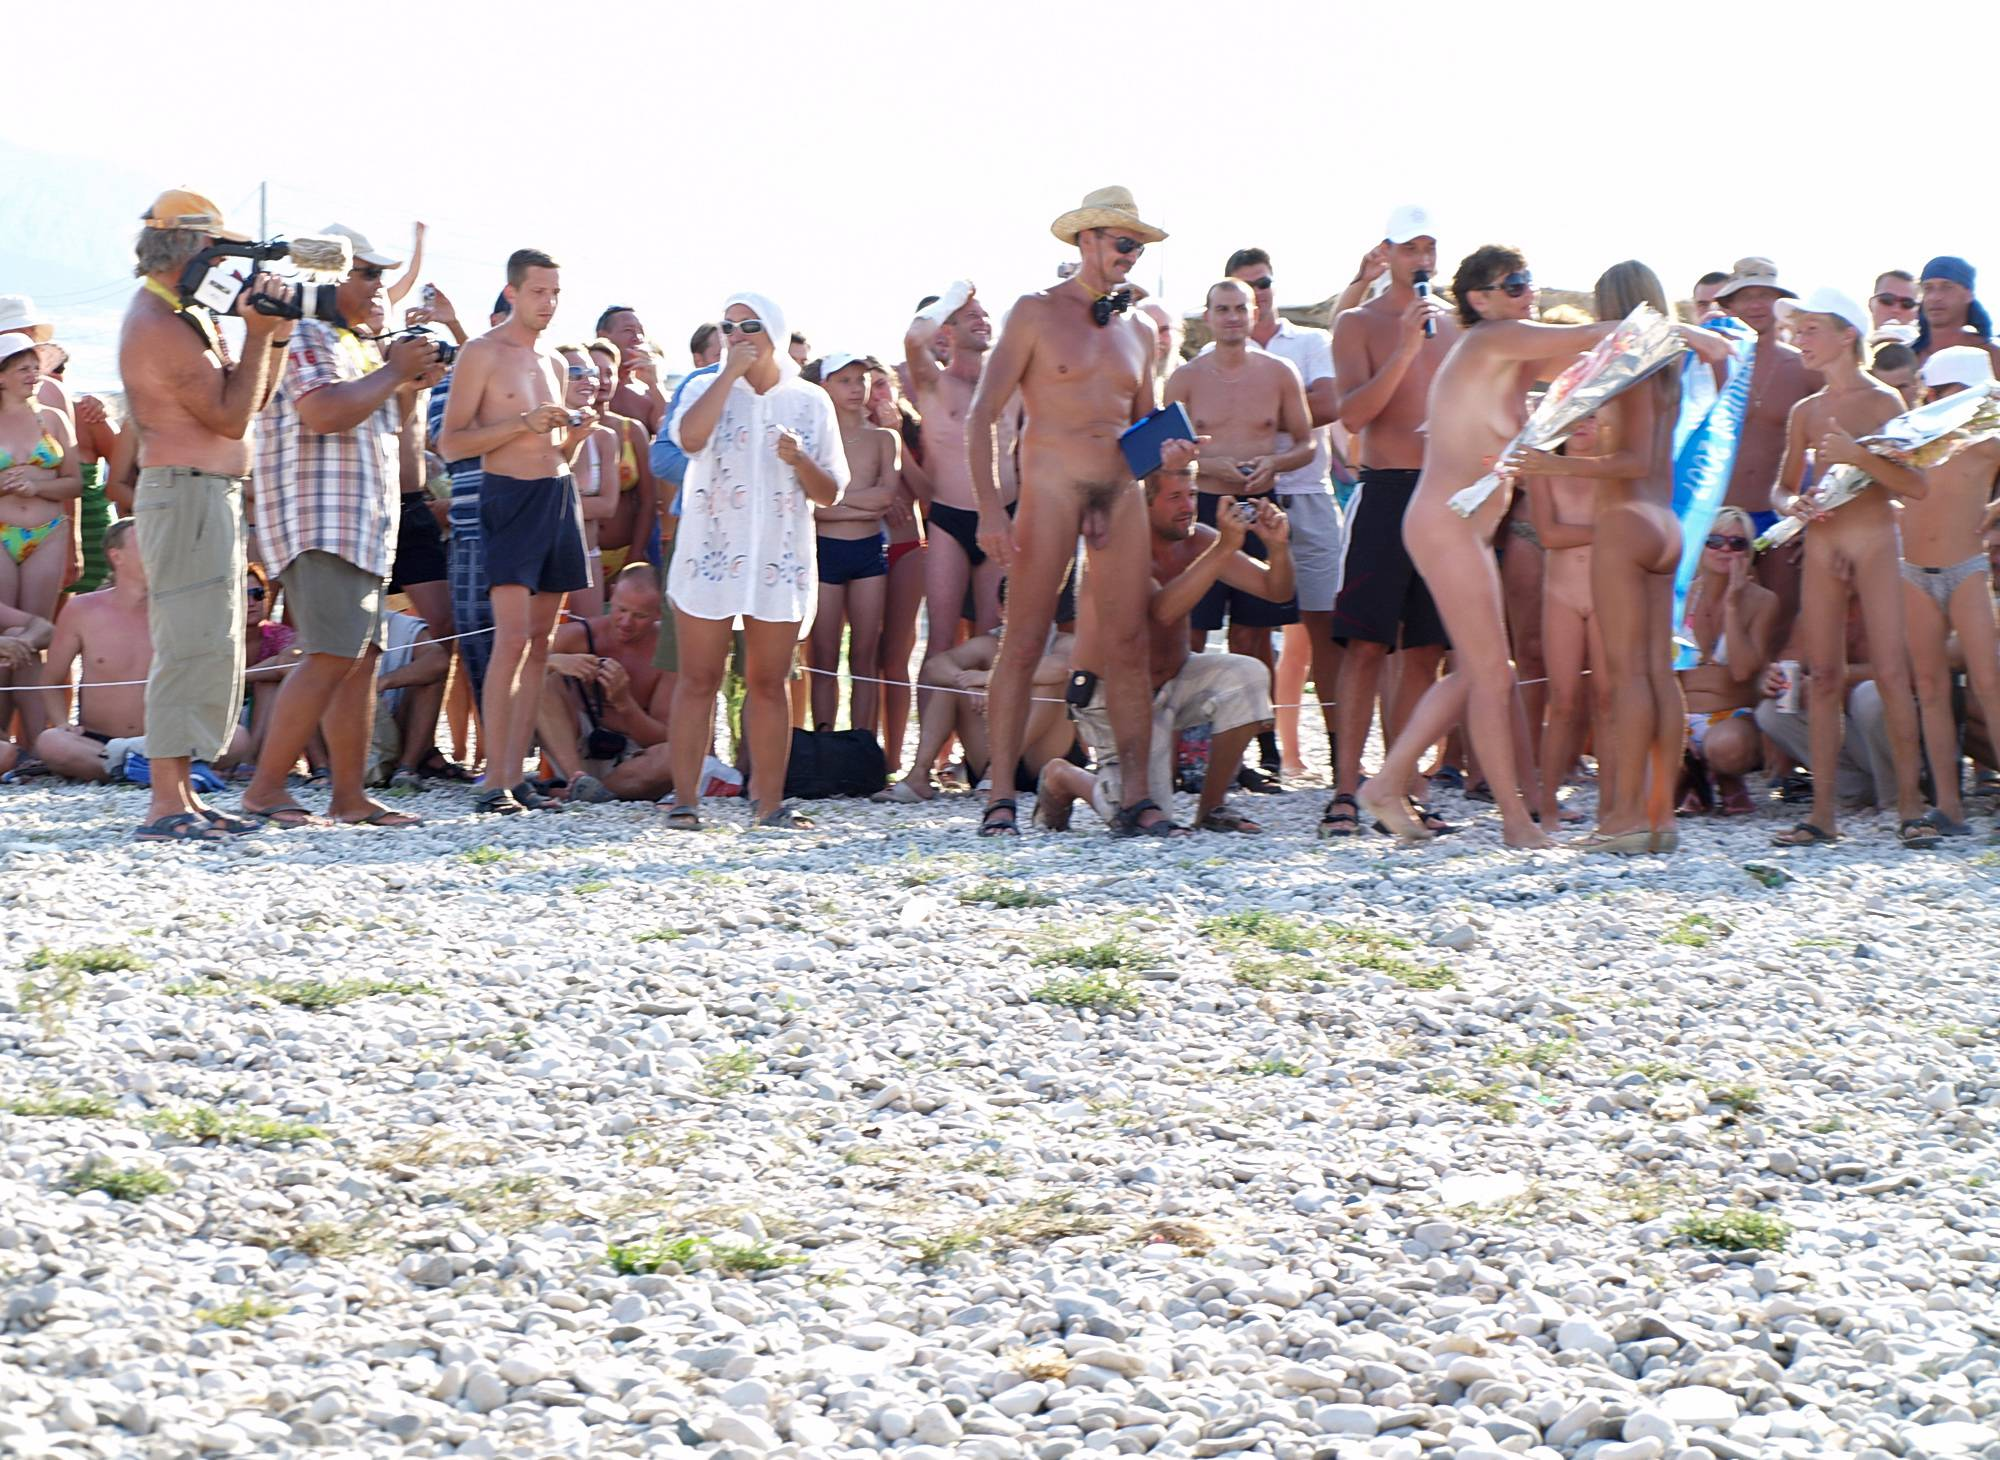 Pure Nudism-Beachside Beauty Pageant - 2